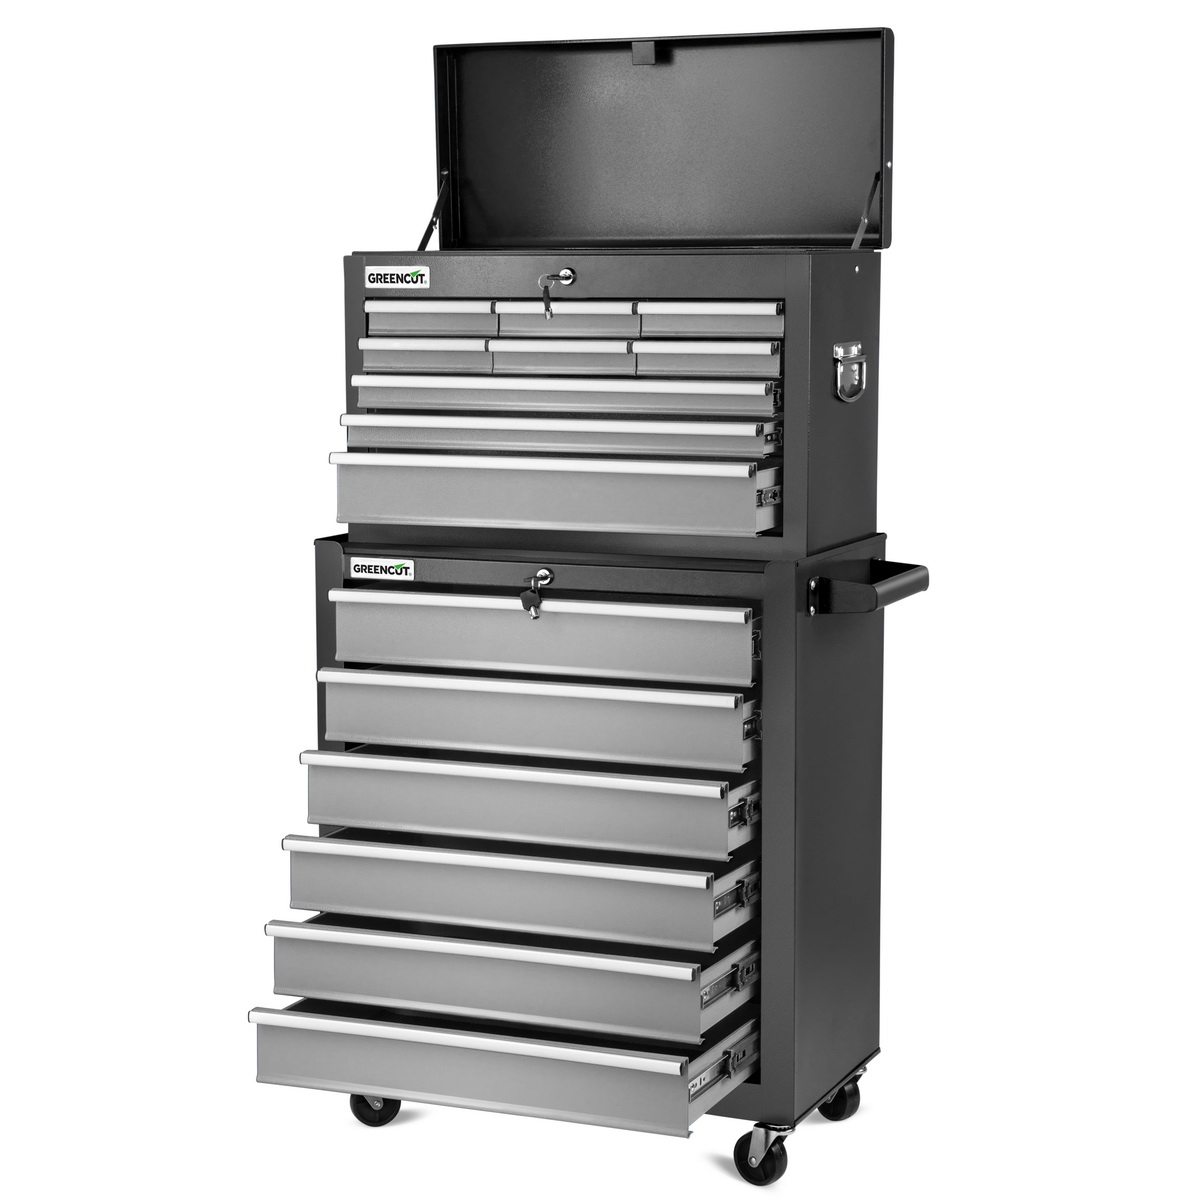 Trolley Tools GREENCUT Silver Color, Box Mobile Tools 4 Wheels With 16 Drawers, Furniture Storage Garage